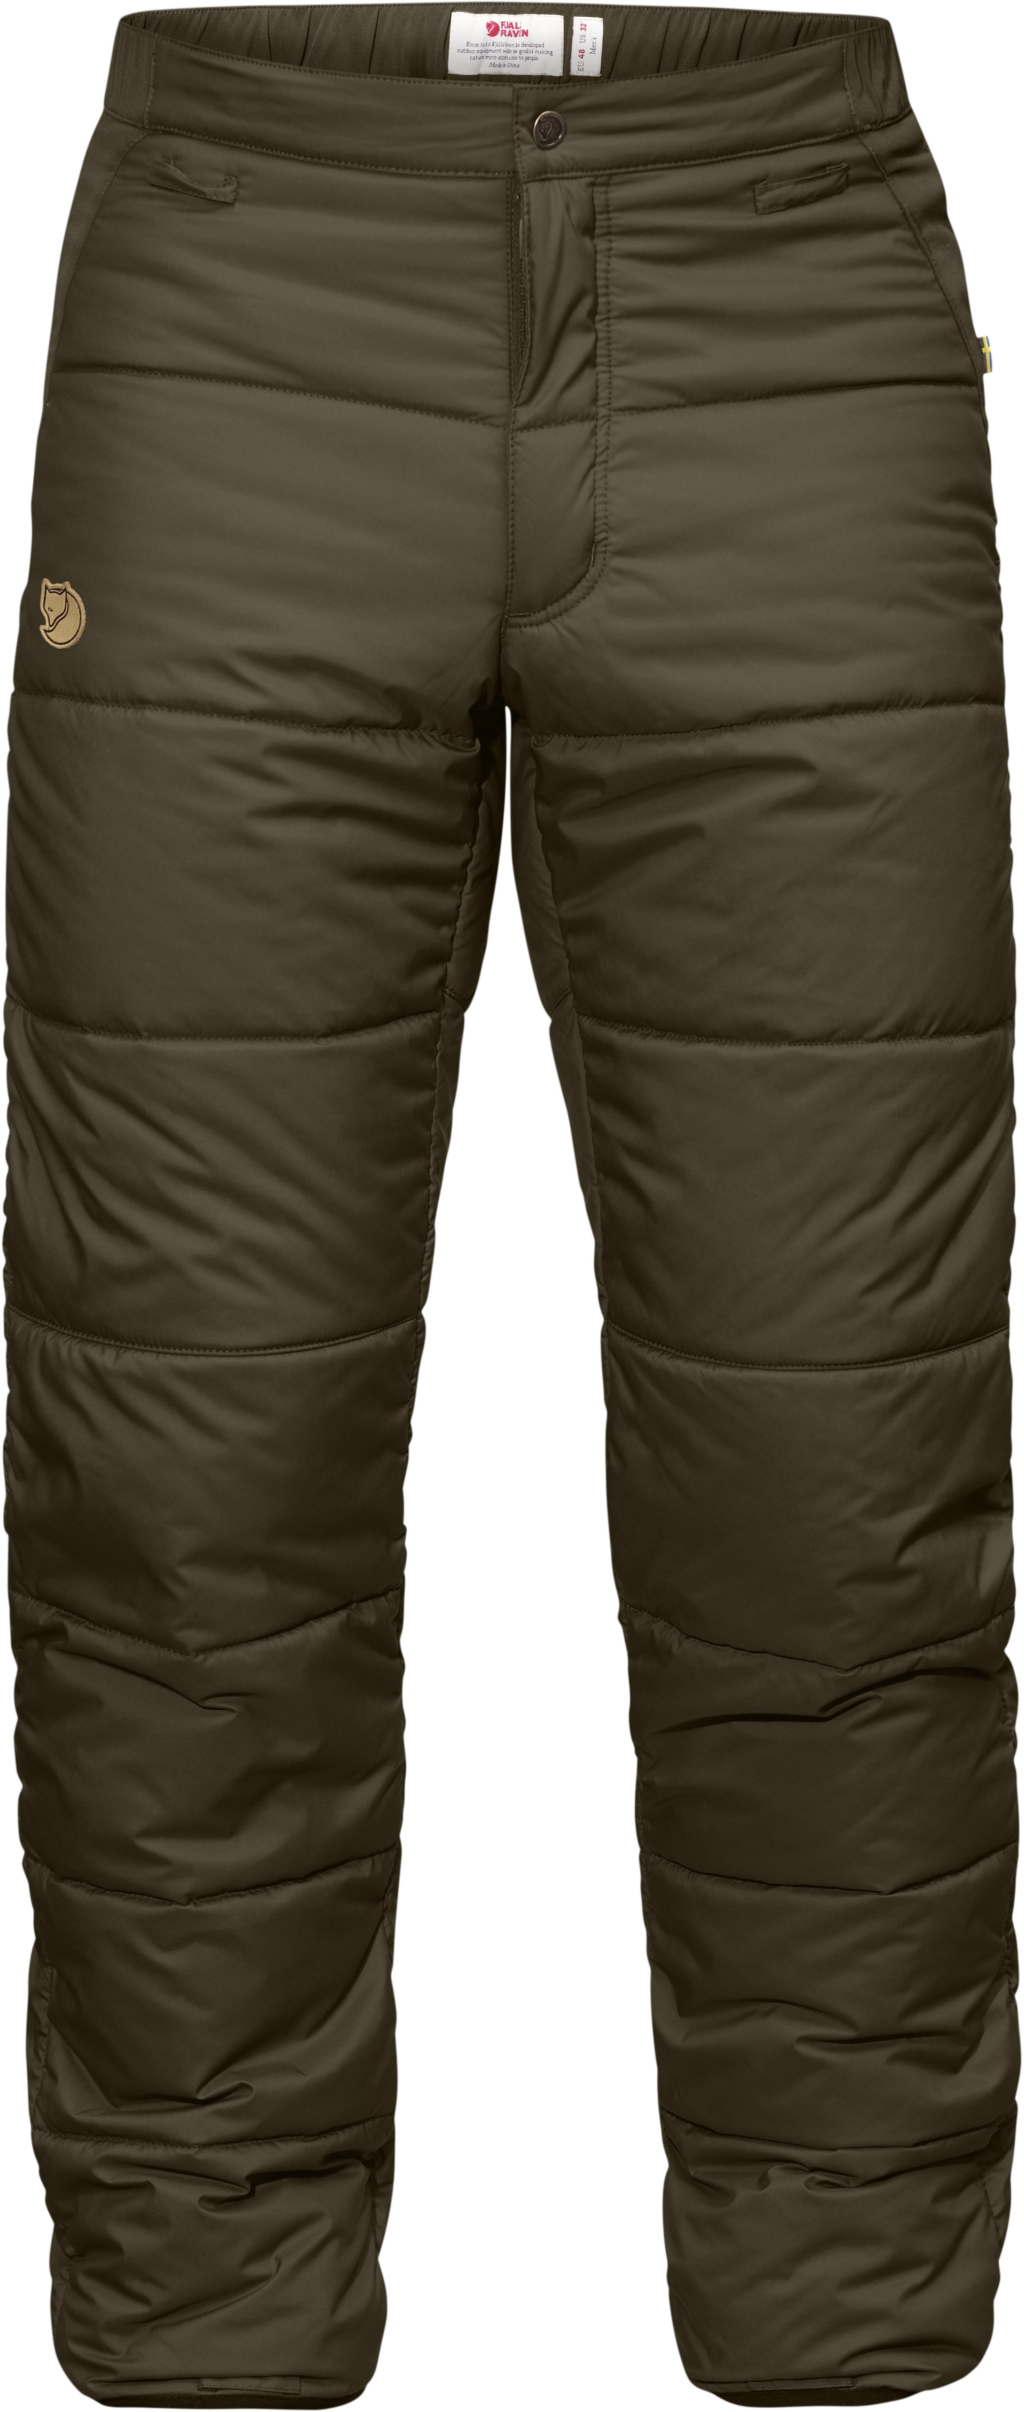 FjallRaven Varmland Padded Trousers Dark Olive-30